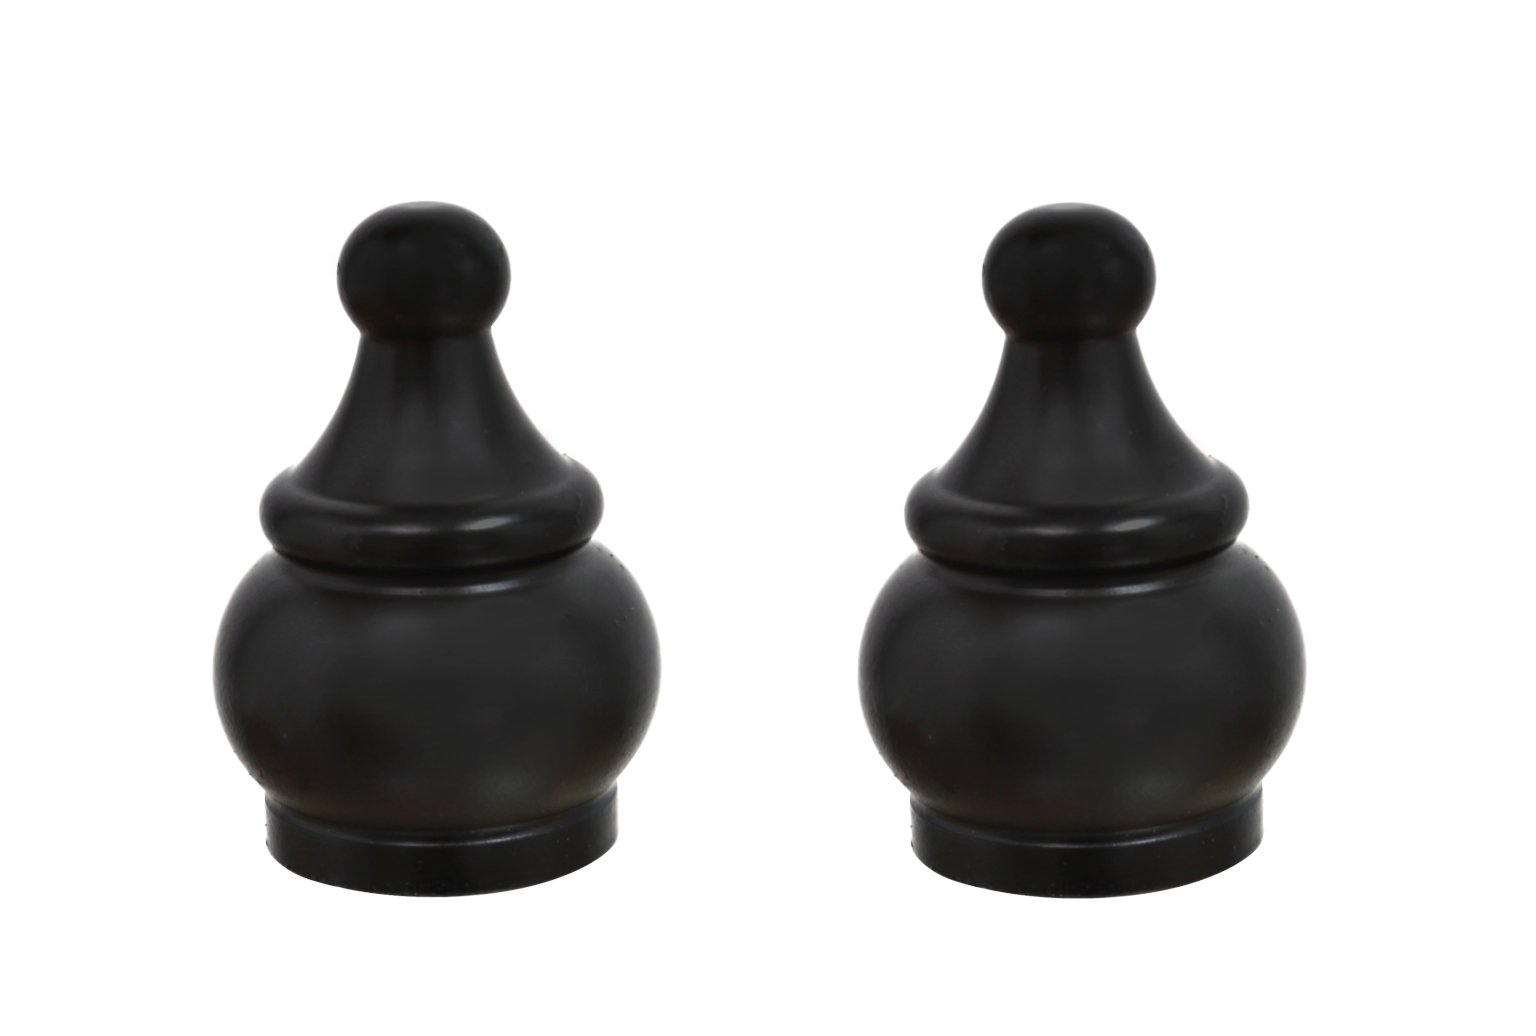 Aspen Creative 24017-32 Steel Lamp Finial Finish, 1 1/2'' Tall (2), 2 PACK, Oil Rubbed Bronze